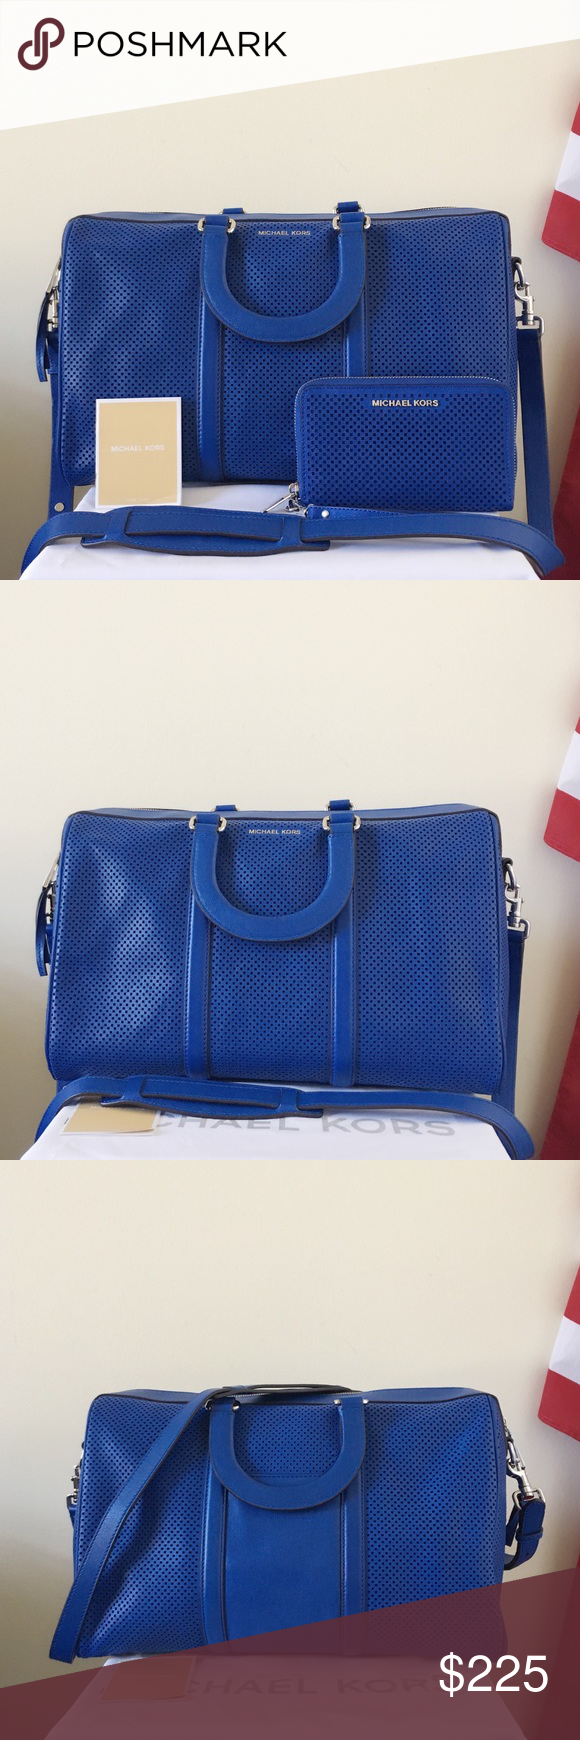 7c468cd3359801 🍀Michael Kors Large Libby Satchel Set Stunning and stylish! Such an eye  catching set! Electric blue with silver detailing. Lightly used. Authentic.